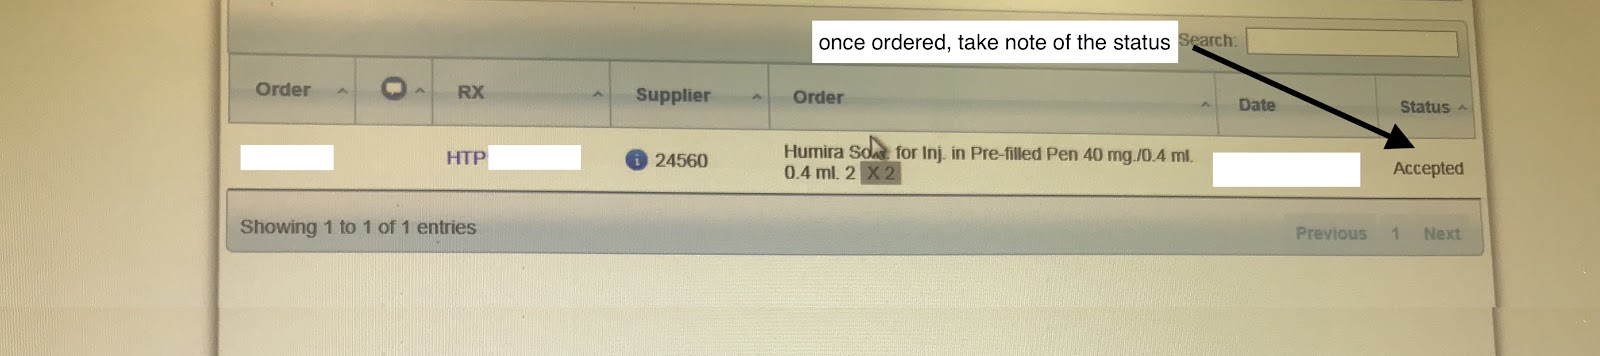 High Tech Medicine is ordered and the PCRS and the Supplier have accepted the order